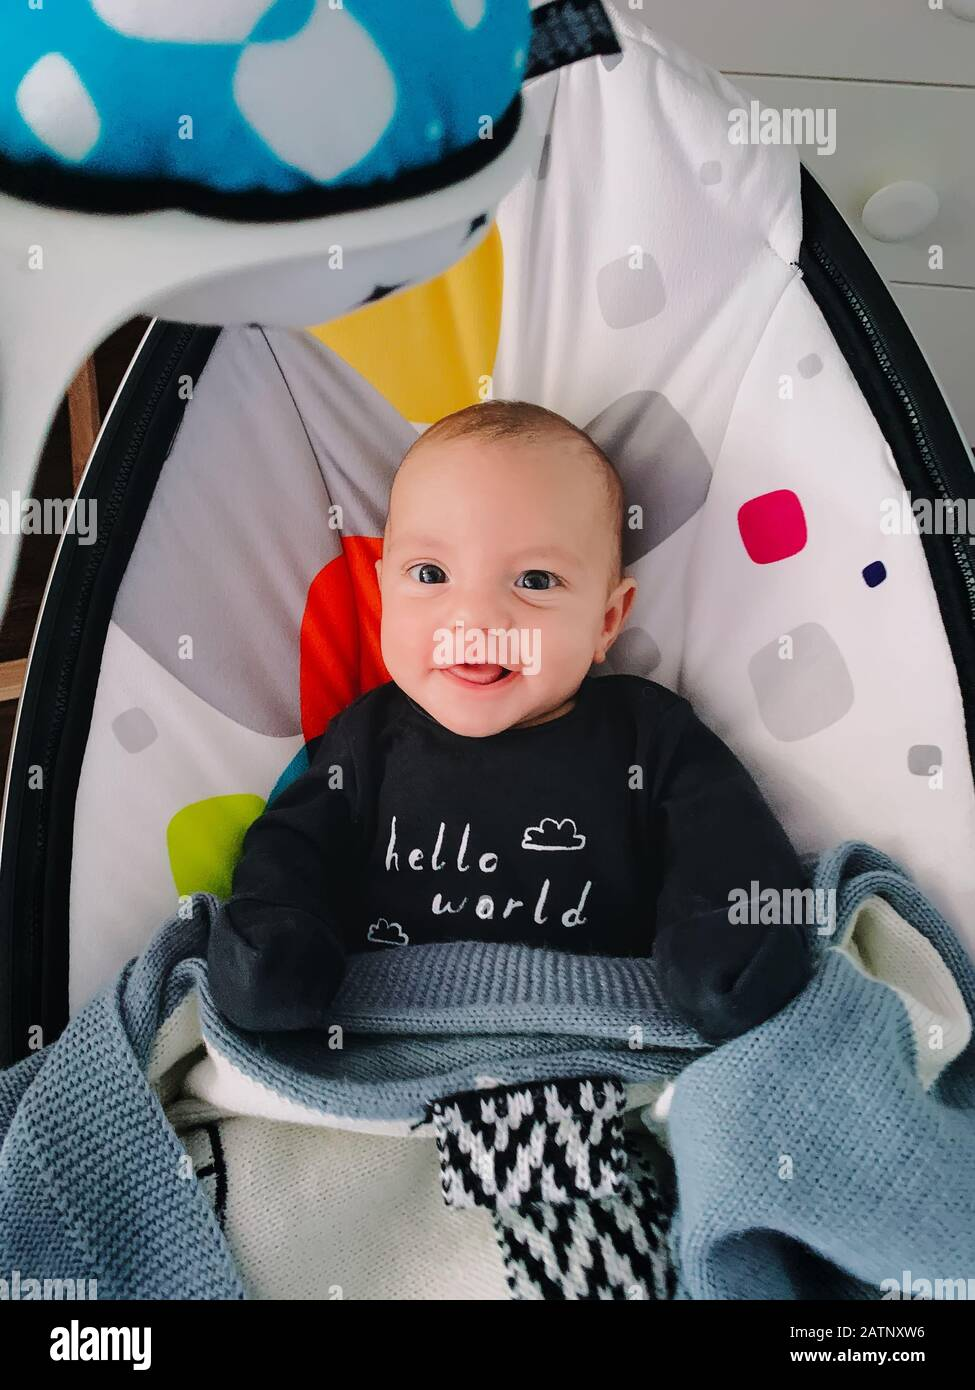 Little Cute Boy Sitting In Baby Rocker And Smiling Modern Toys And Center For Children Stock Photo Alamy